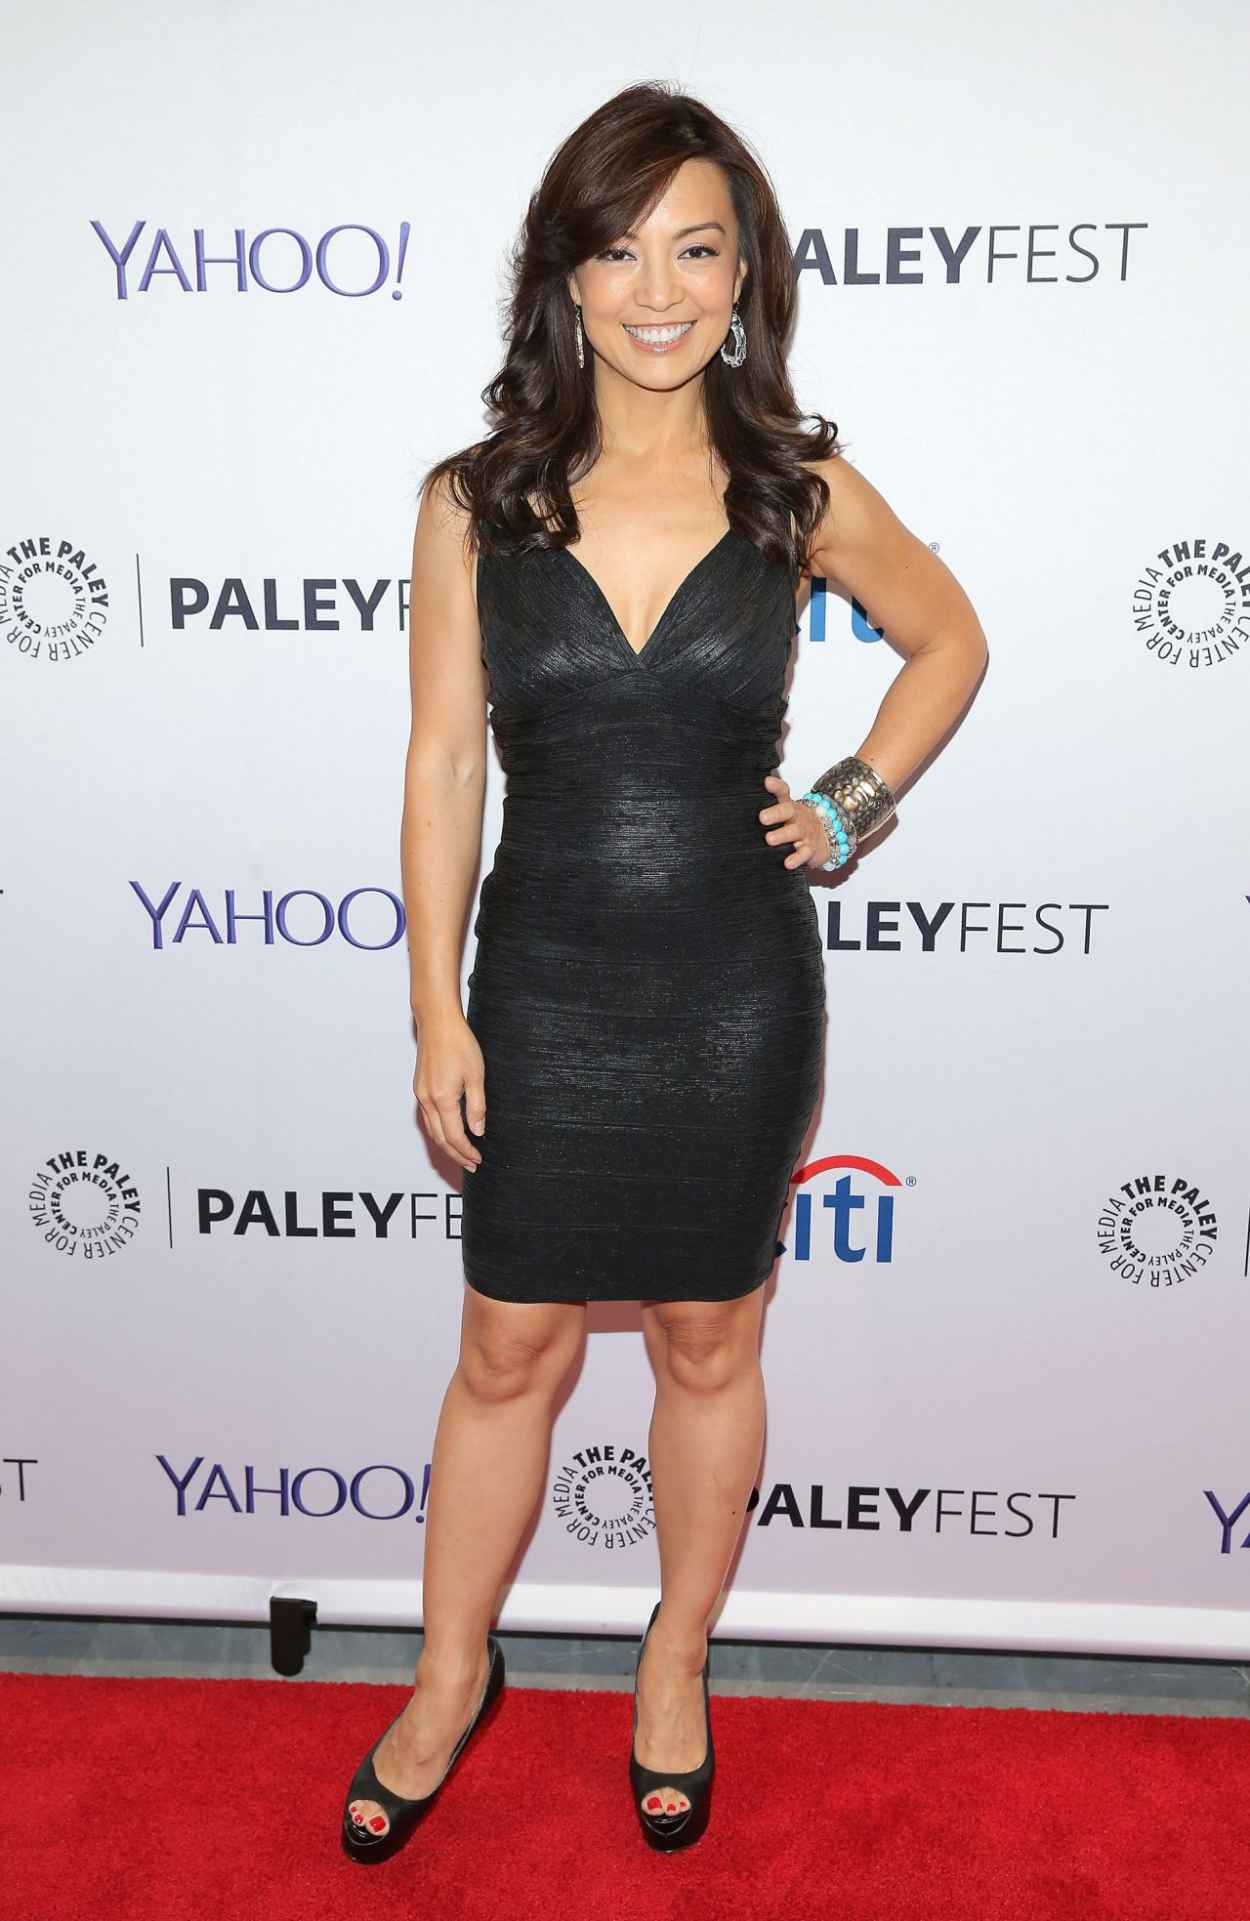 Ming-Na Wen - Marvels Agents of SHIELD Paleyfest Event in New York City - October 2015-1